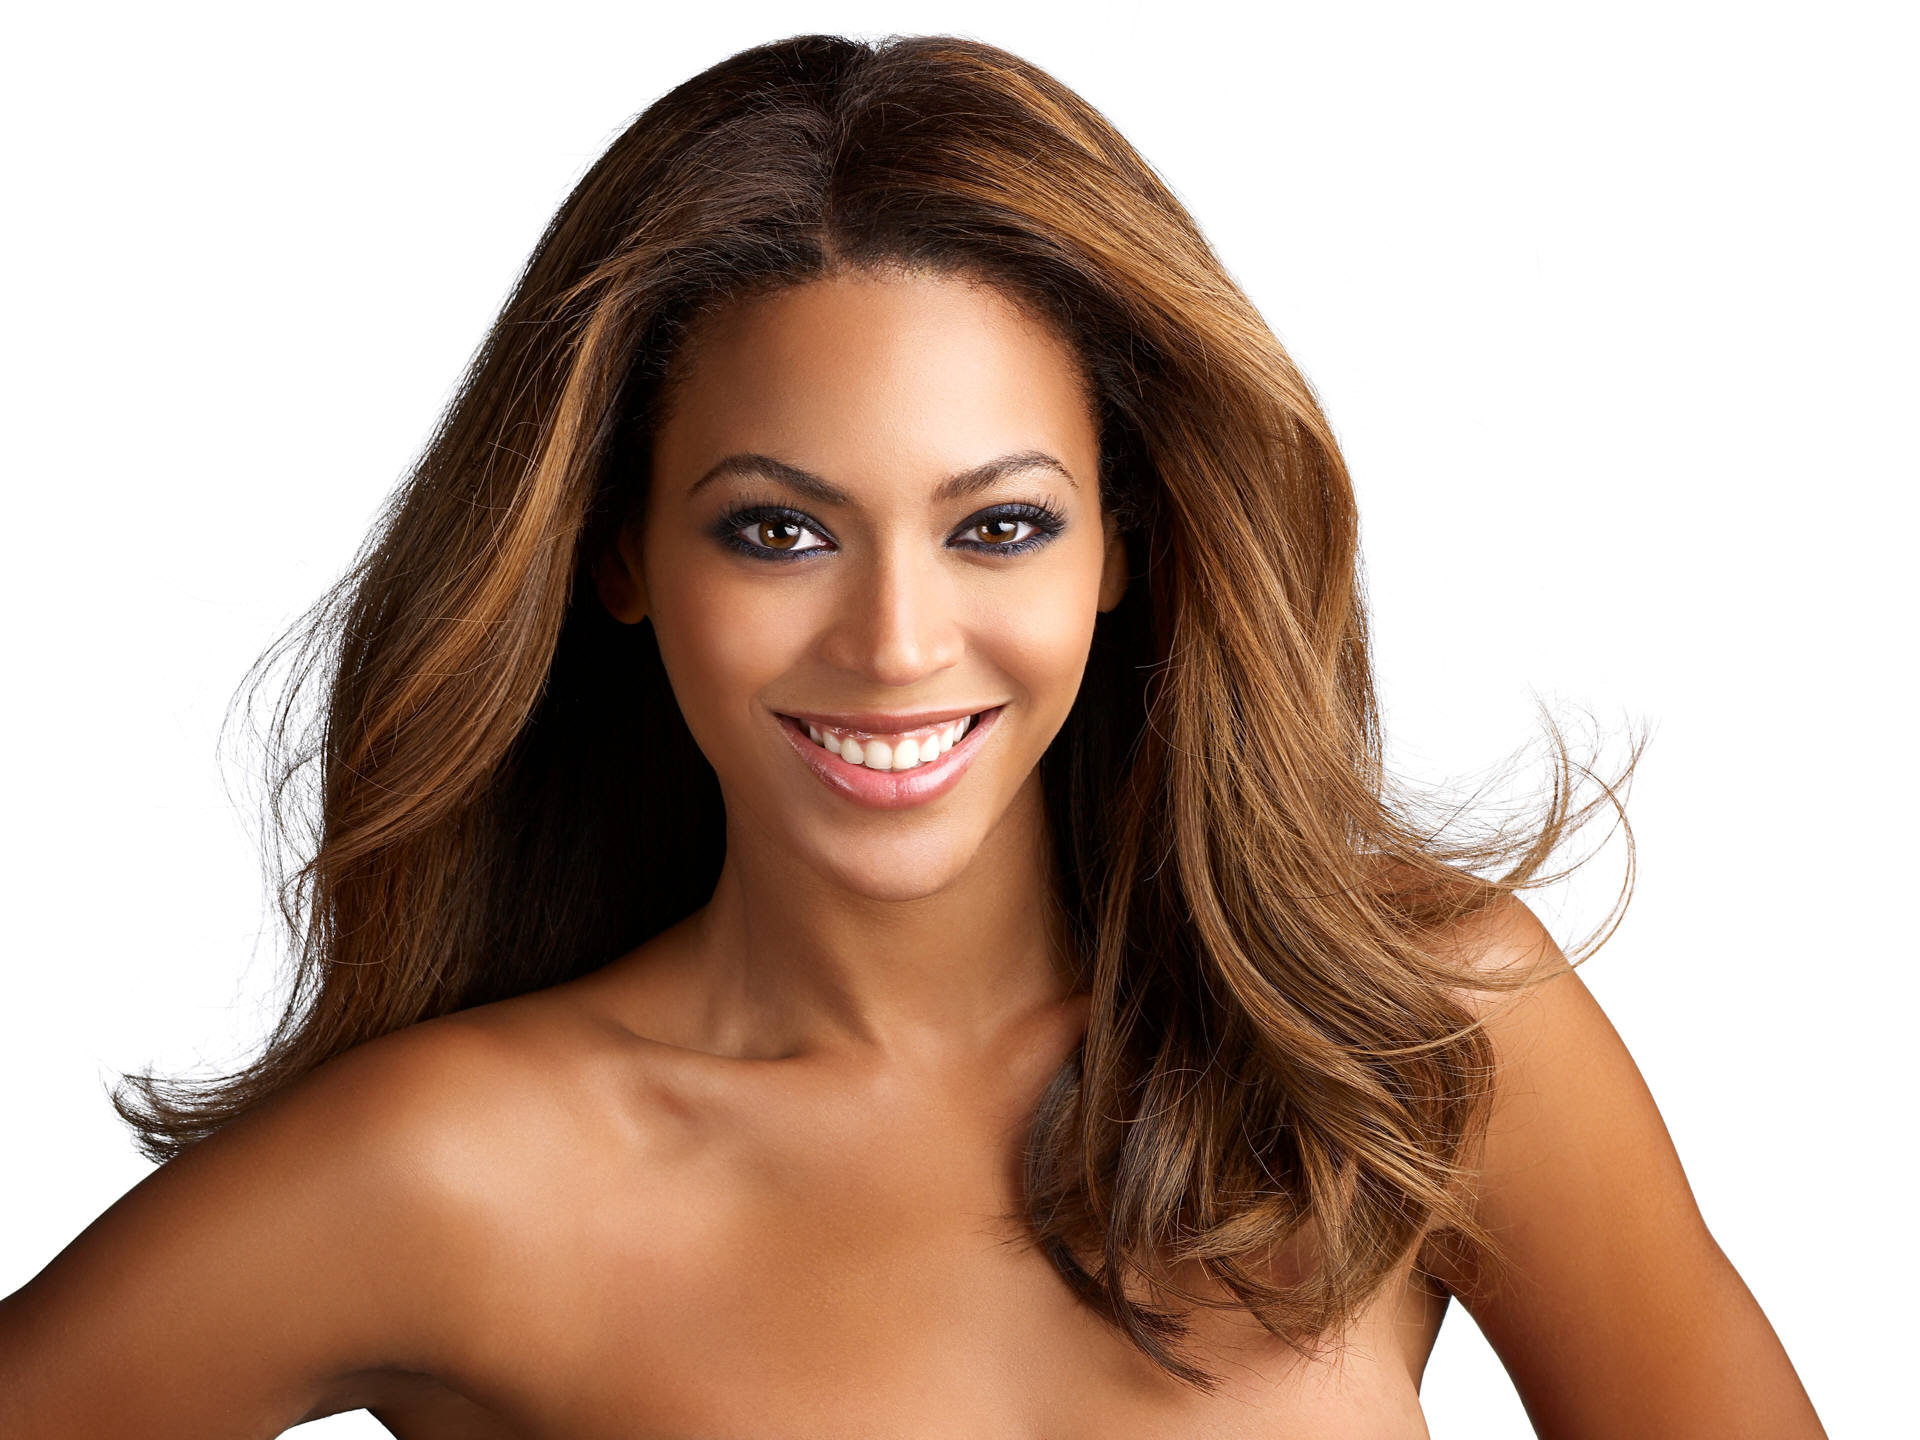 Top 10 Most Beautiful Women Celebrities In America 2012